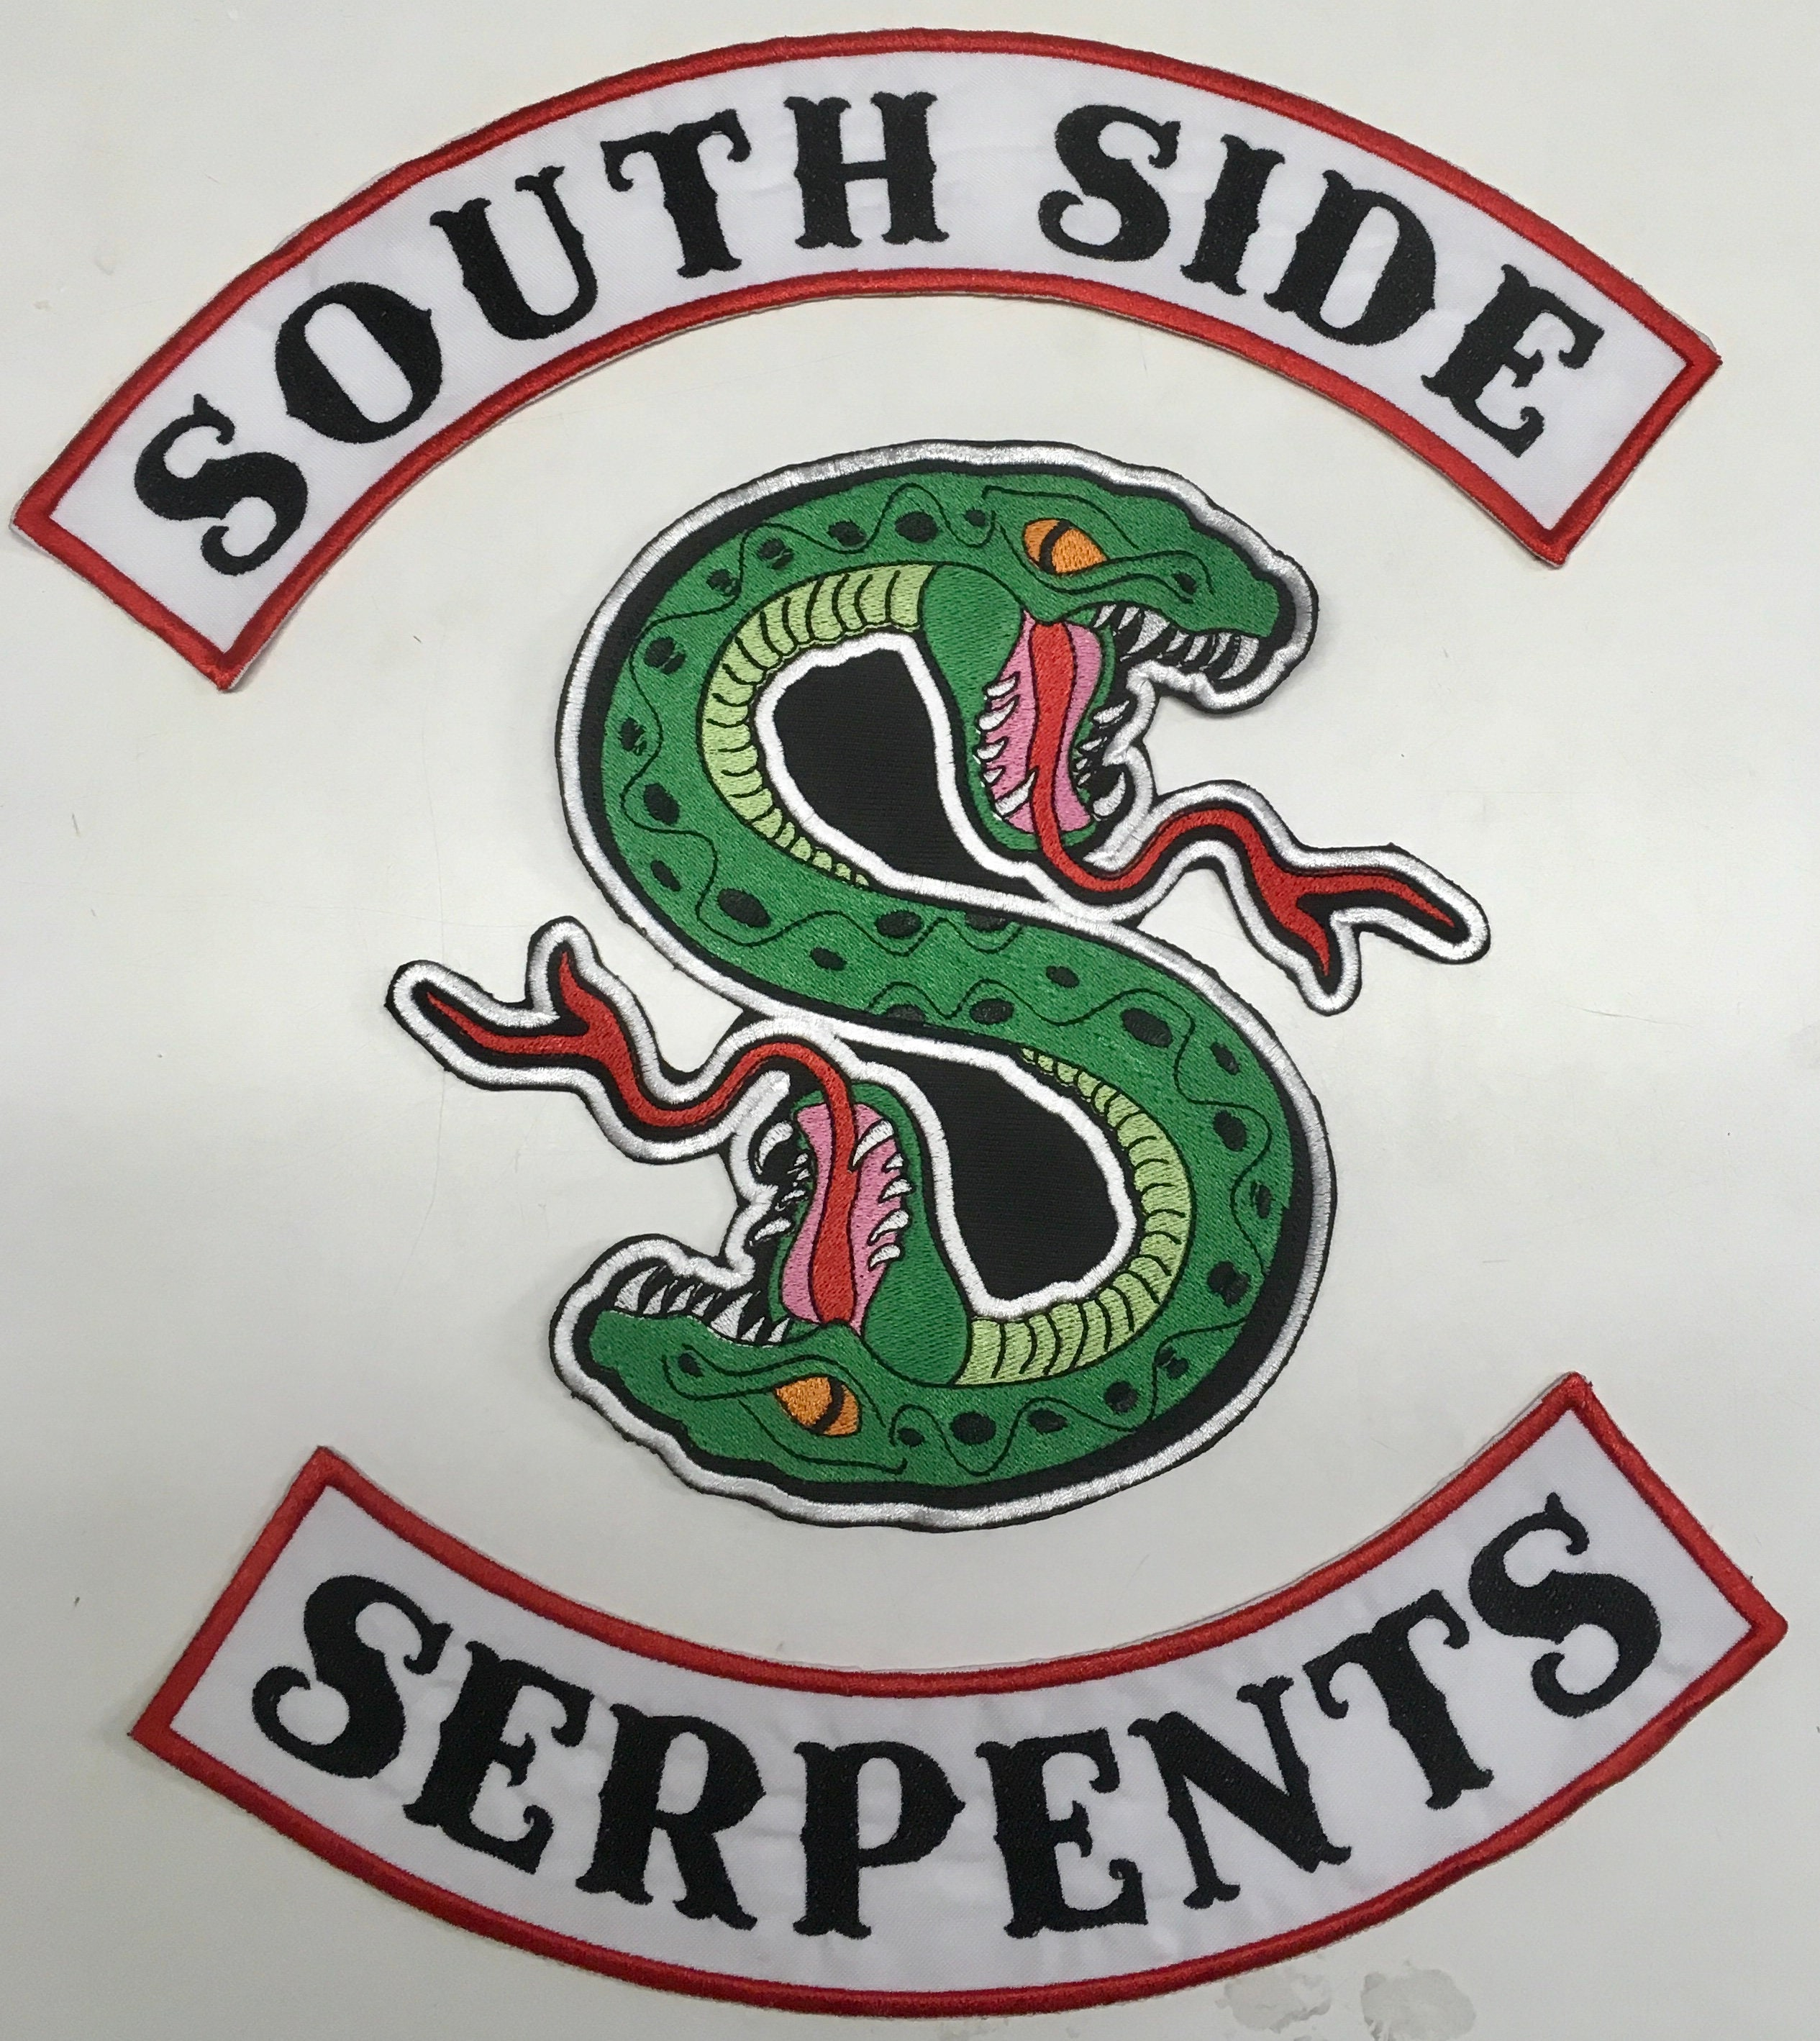 ce4c7d30e ... South Side Serpent Riverdale Tumblr: XL Southside Serpent Patch Set  Costume Cosplay Riverdale